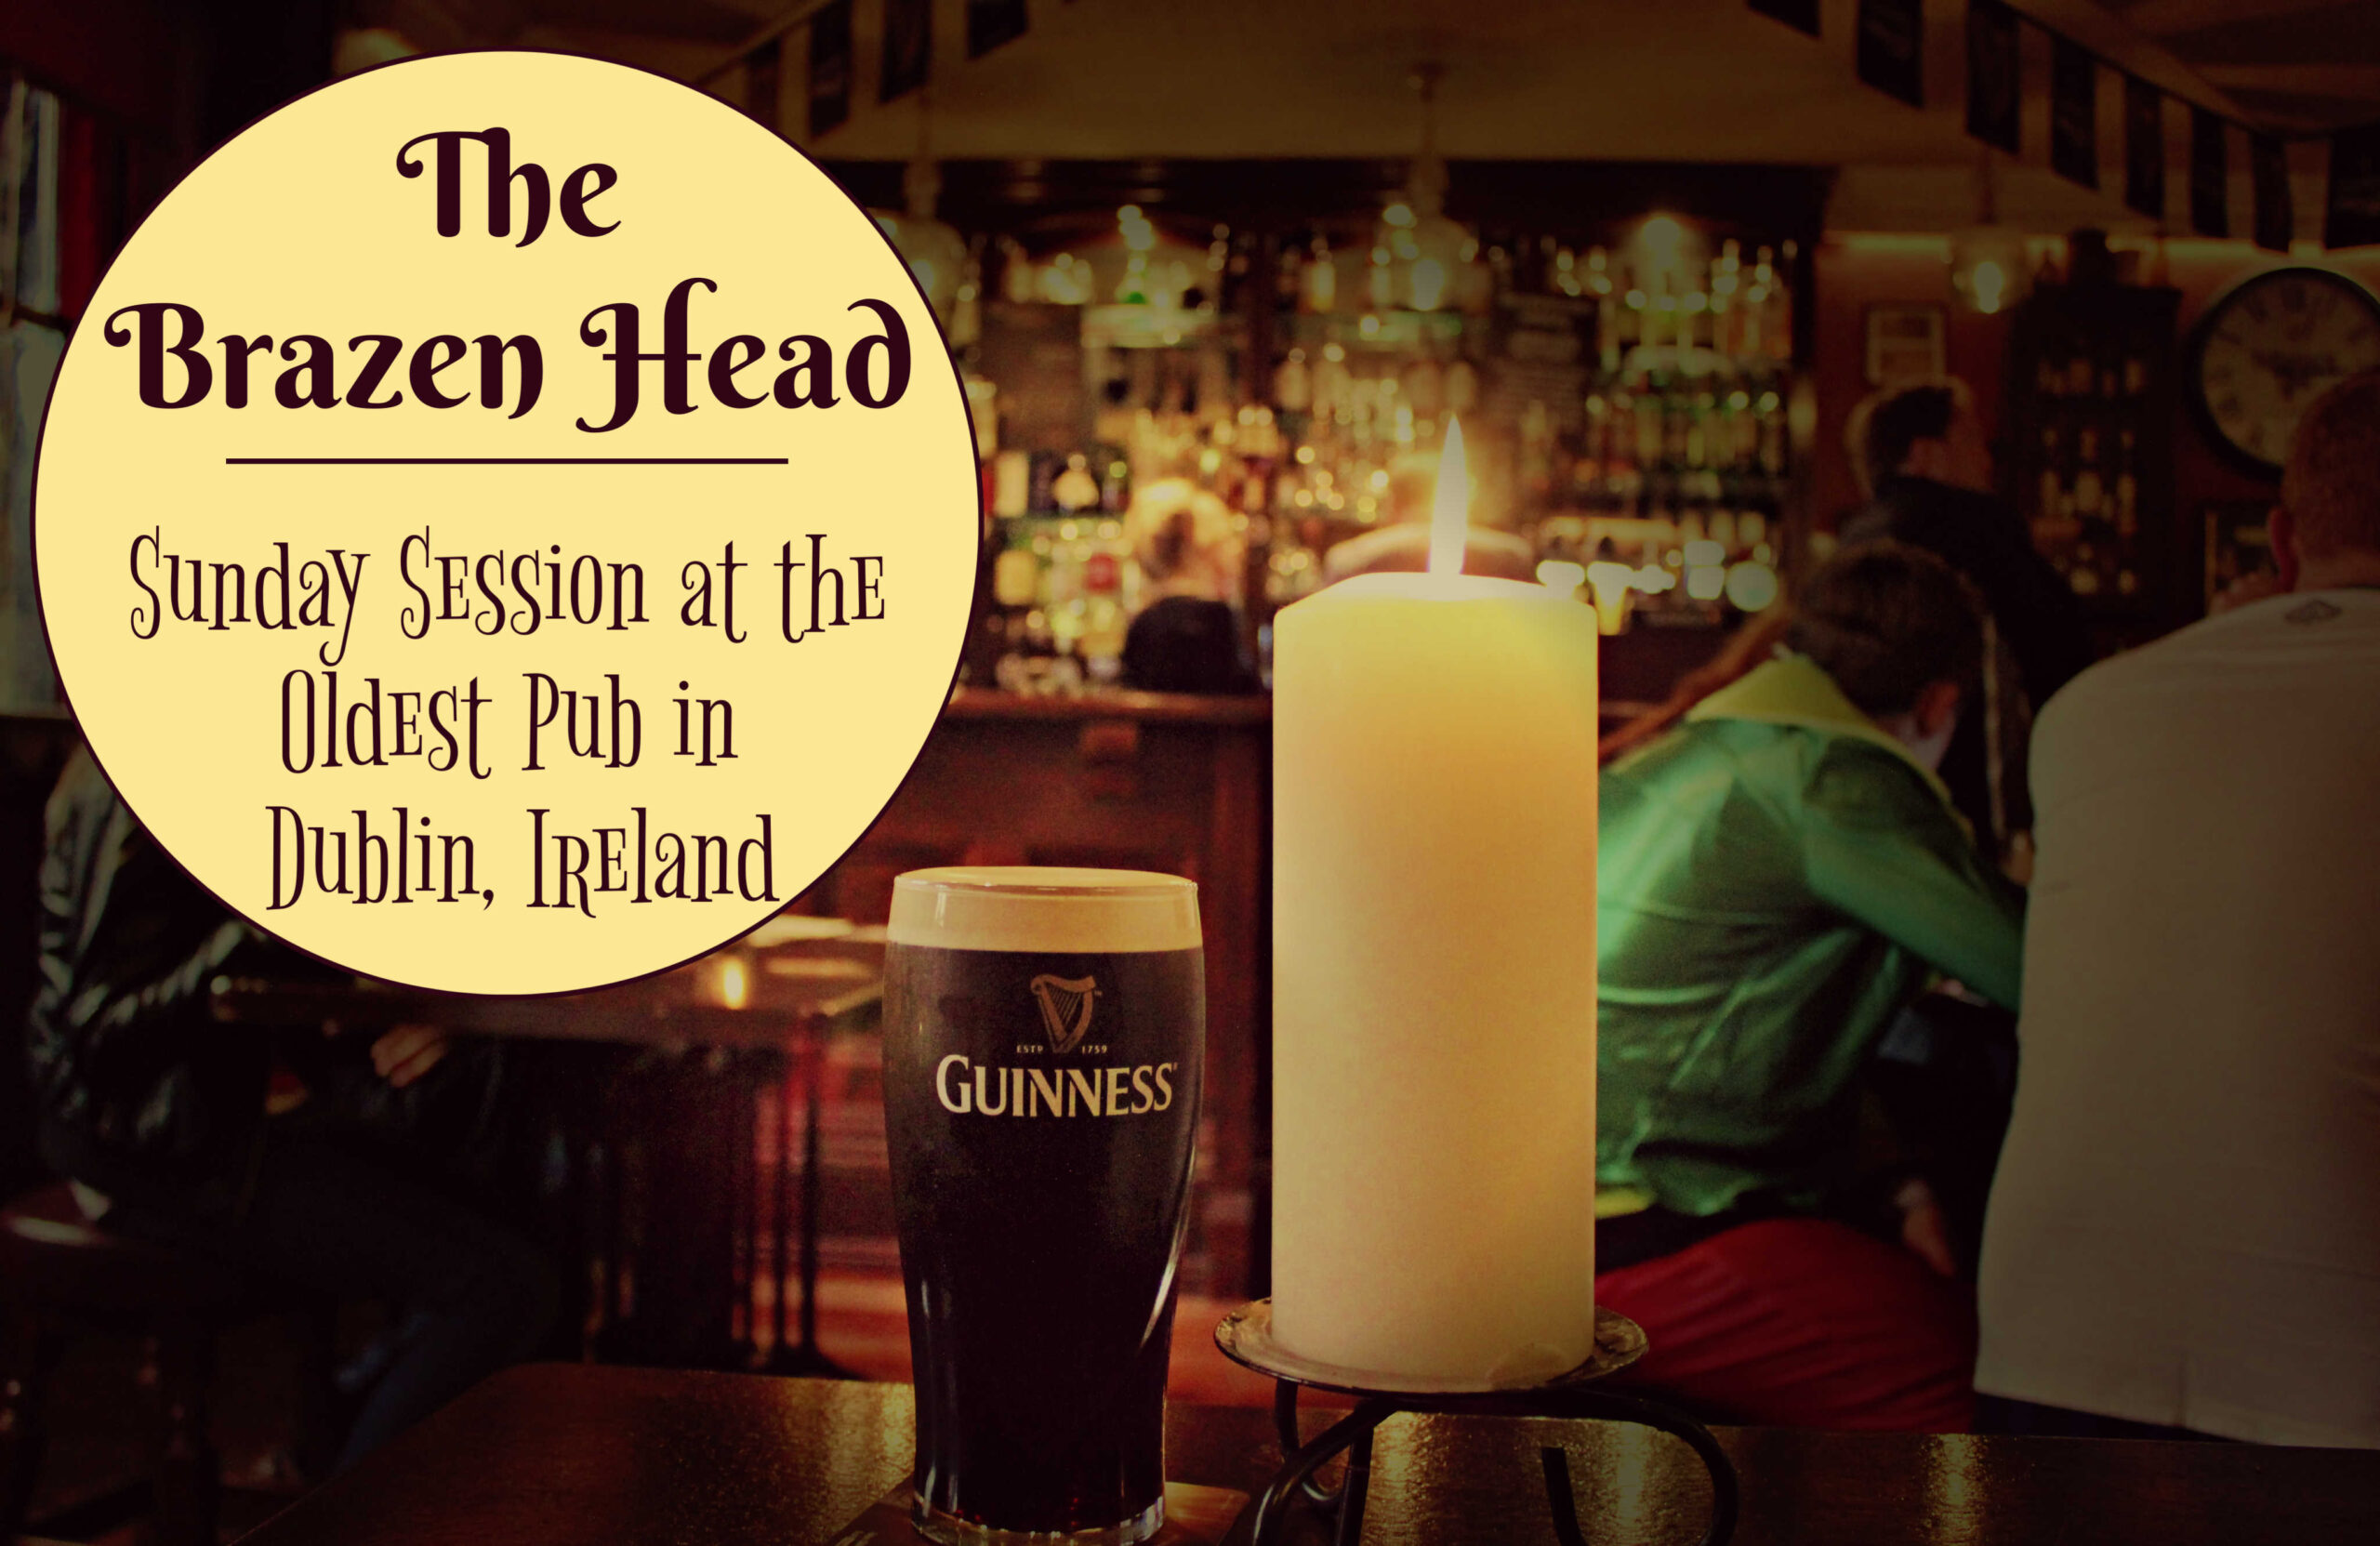 The Brazen Head: Sunday Session at the Oldest Pub in Dublin, Ireland by JetSettingFools.com